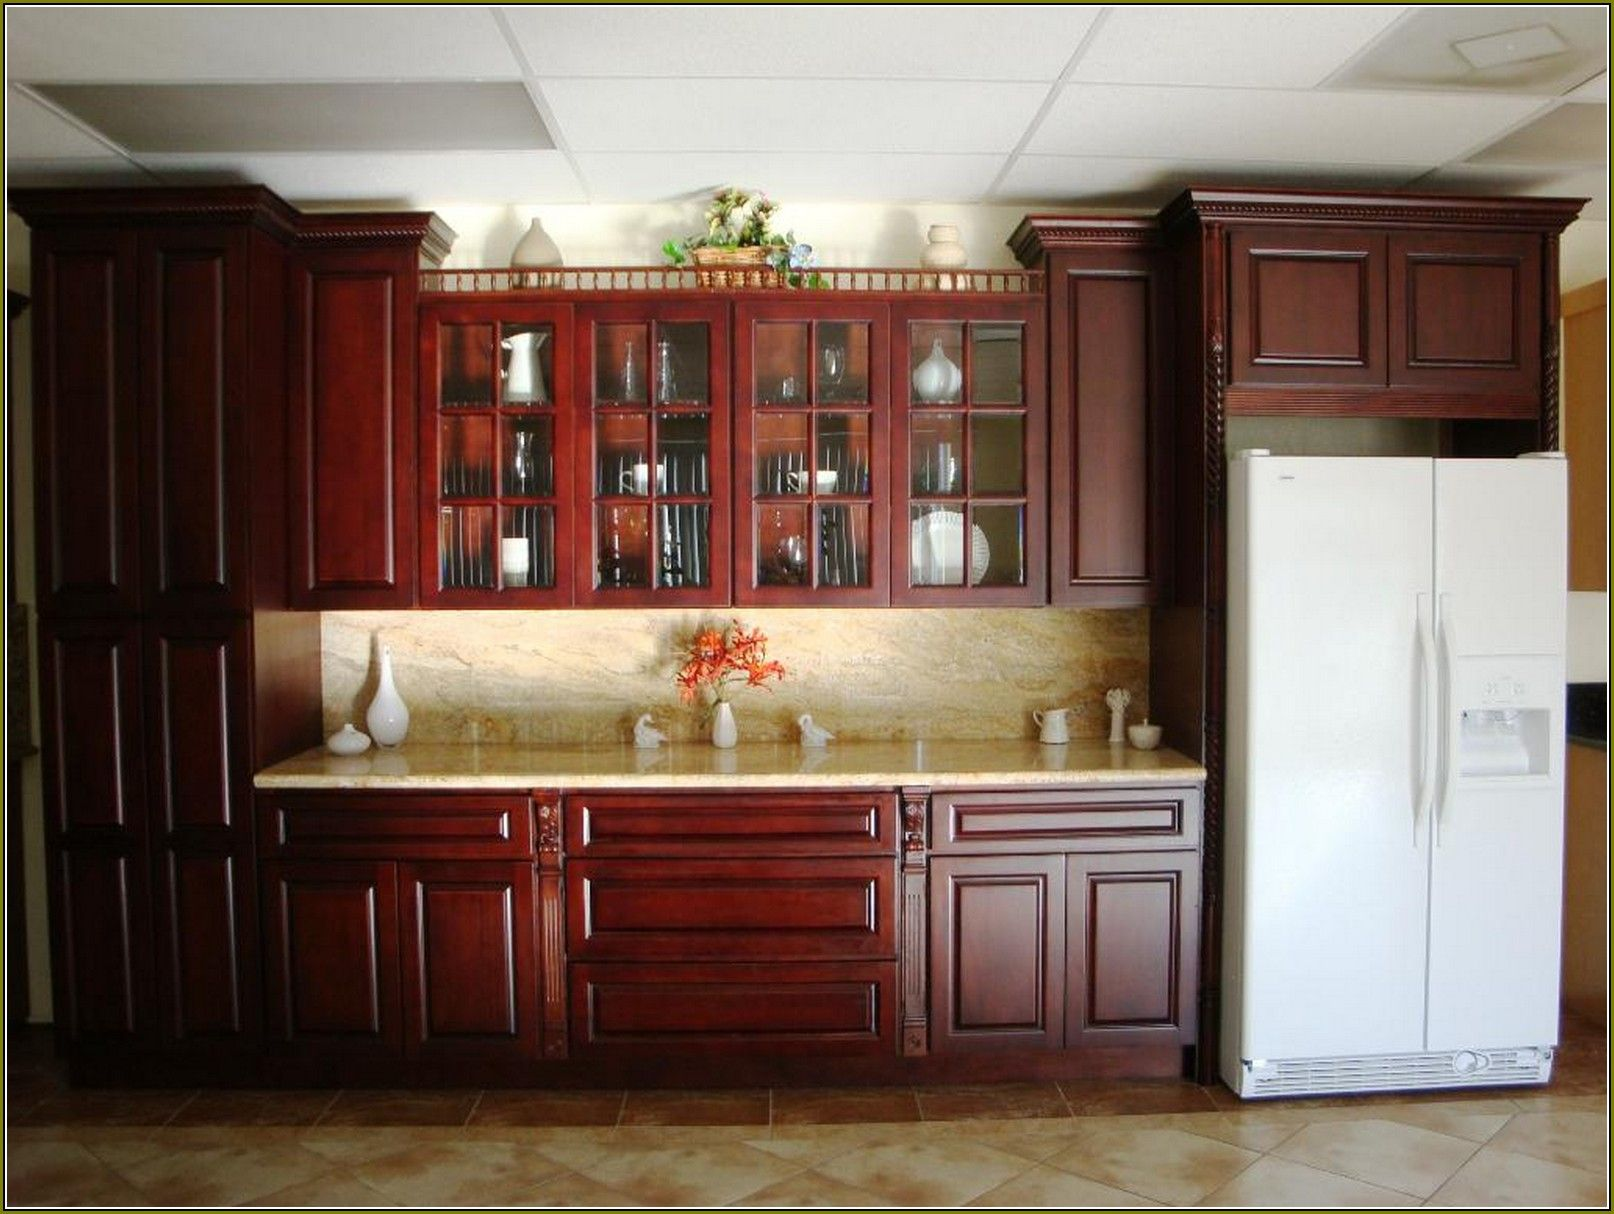 makeover doors vanities cabinet pin grade add refinish shelves shelf a revamp bathroom remove vanity existing and builder s